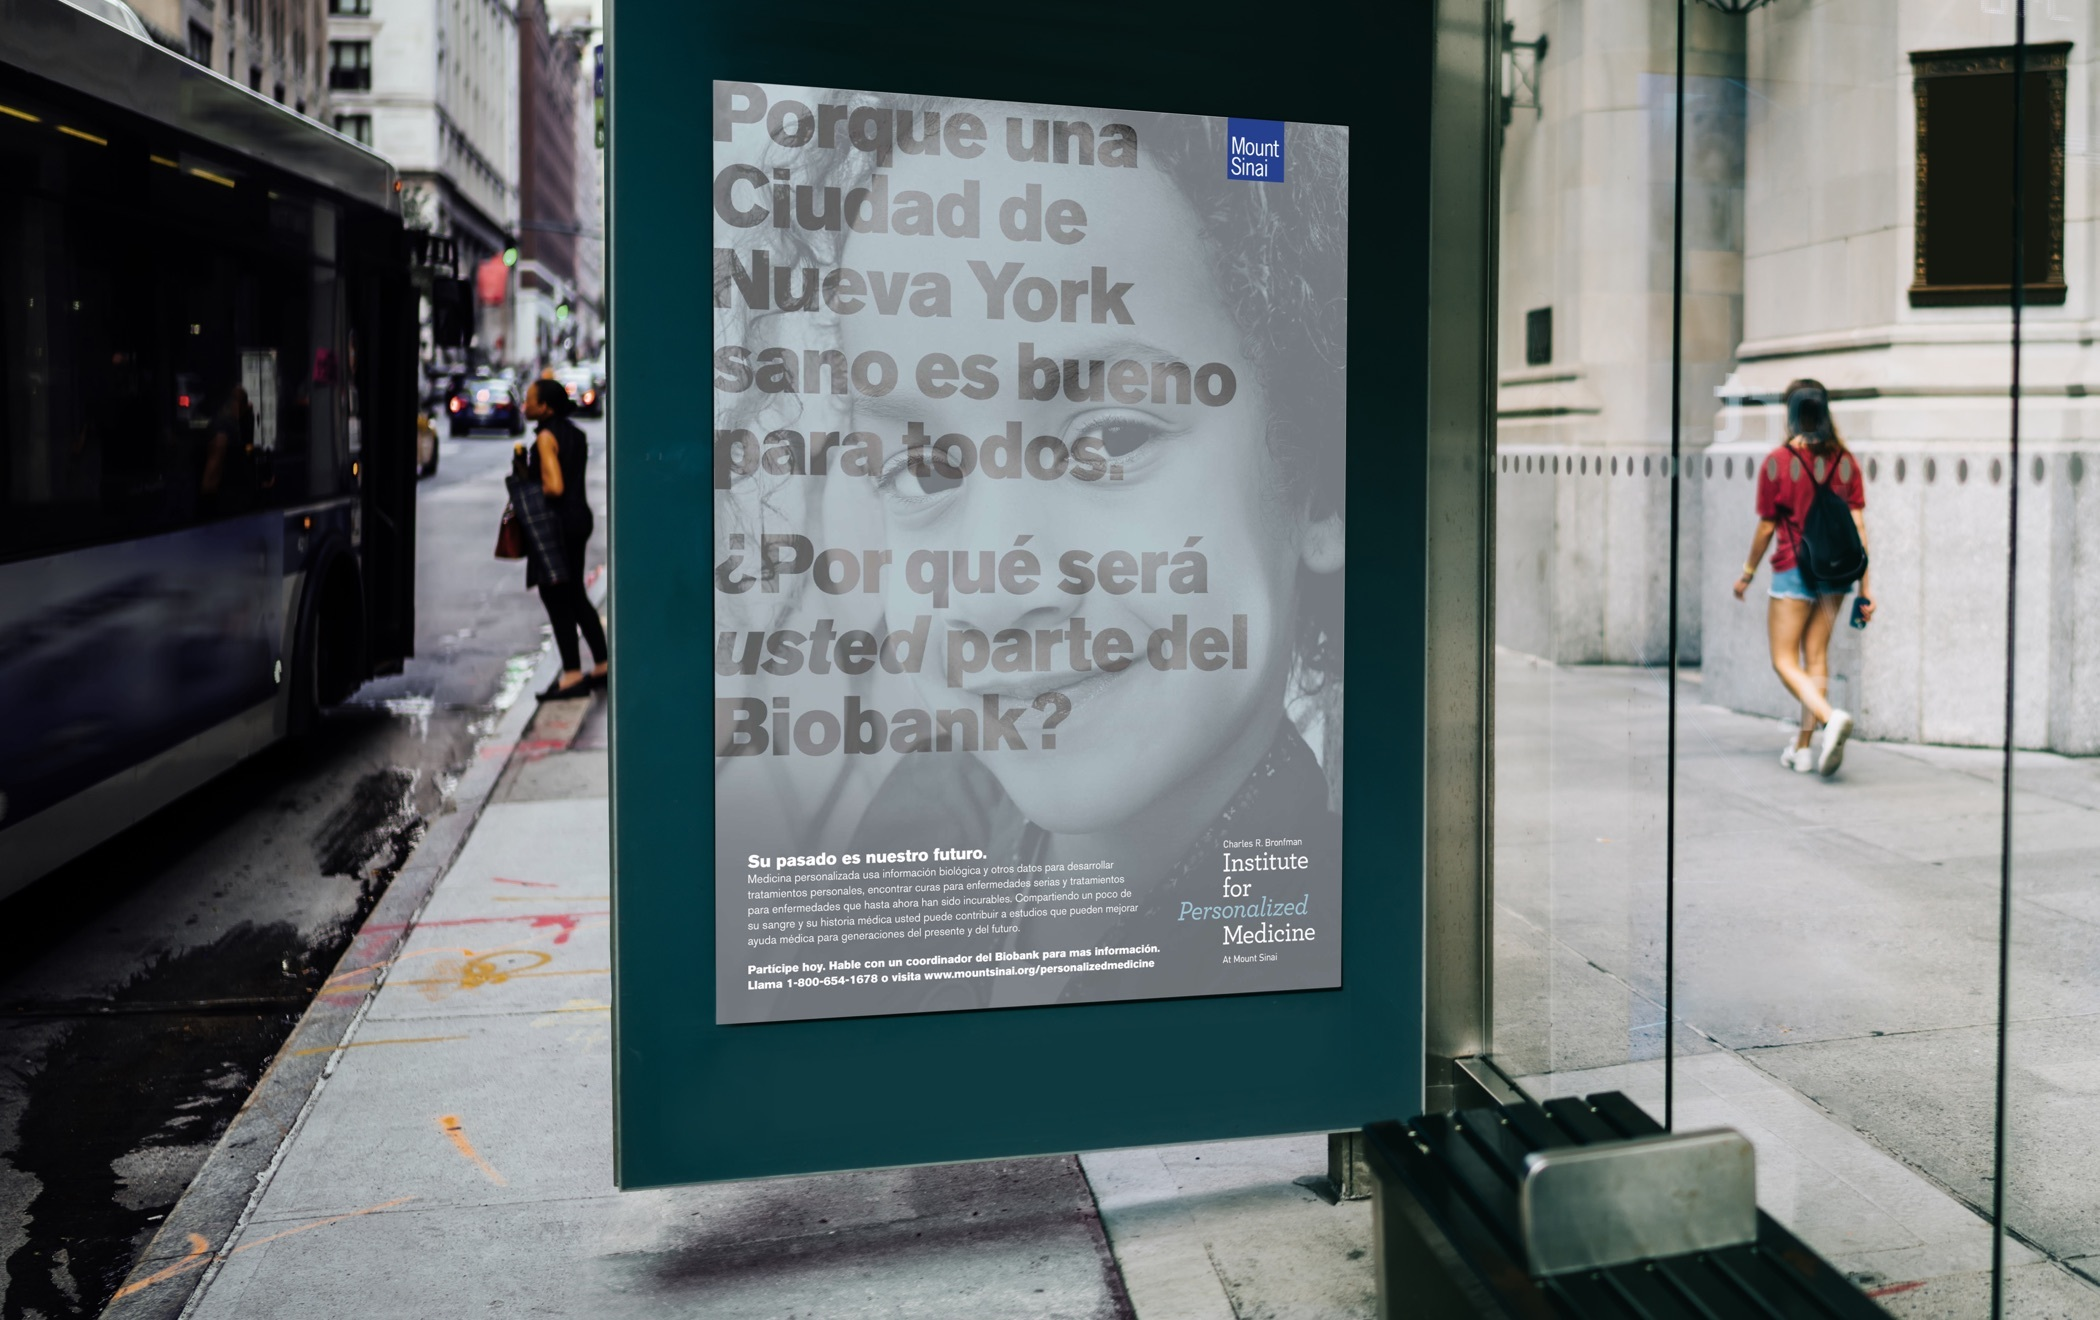 An large advertisement for the Mount Sinai Biobank on a bus shelter.